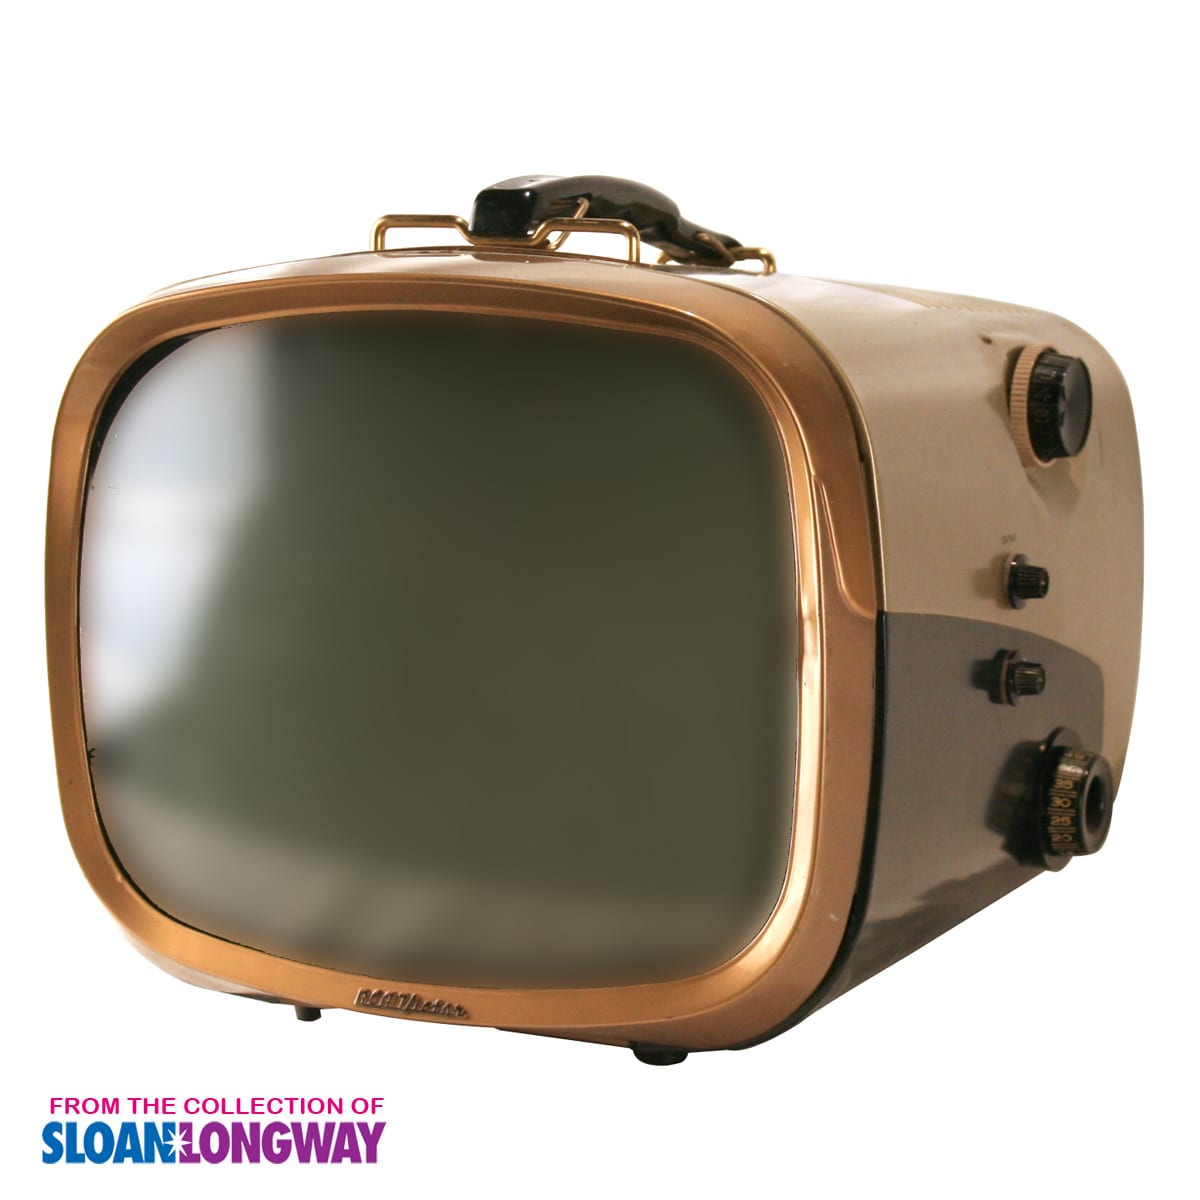 An old television from the collection of the Sloan Museum